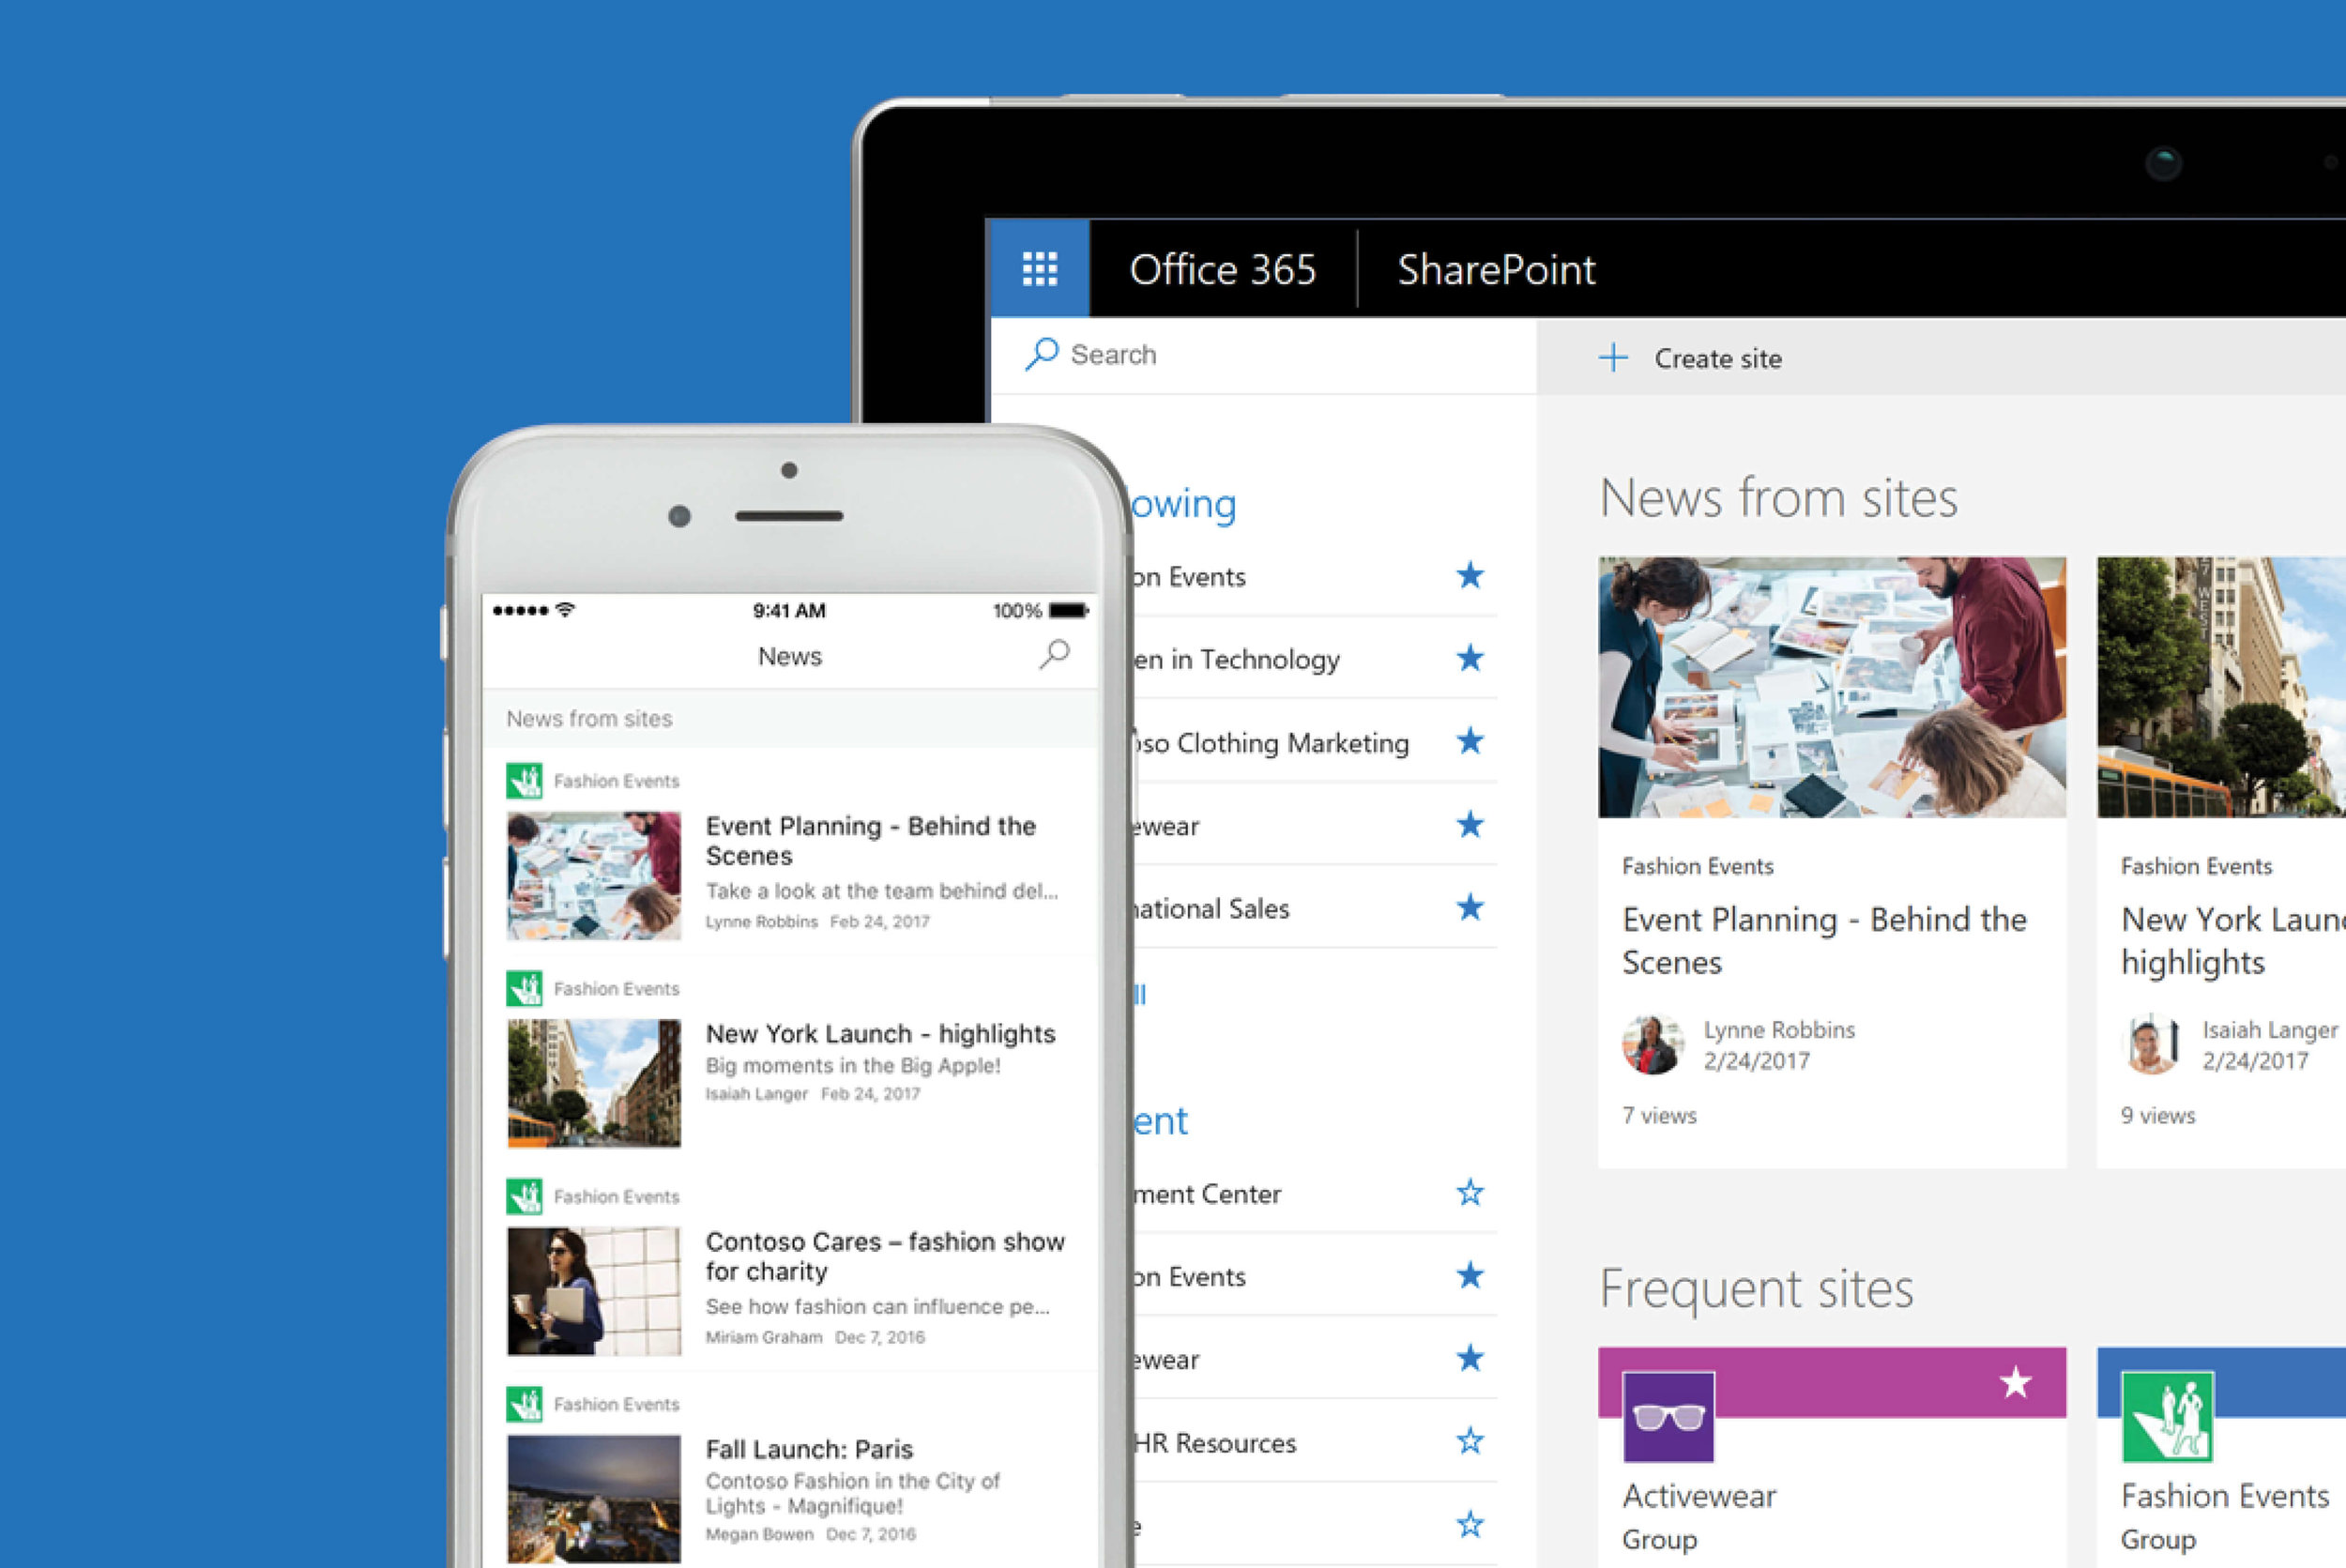 SharePoint Integration - SharePoint is a customizable team software collaboration platform used to help store, organize, share, and access information. We will take your teams to the next level and maximize in-team collaboration by integrating SharePoint into your business.